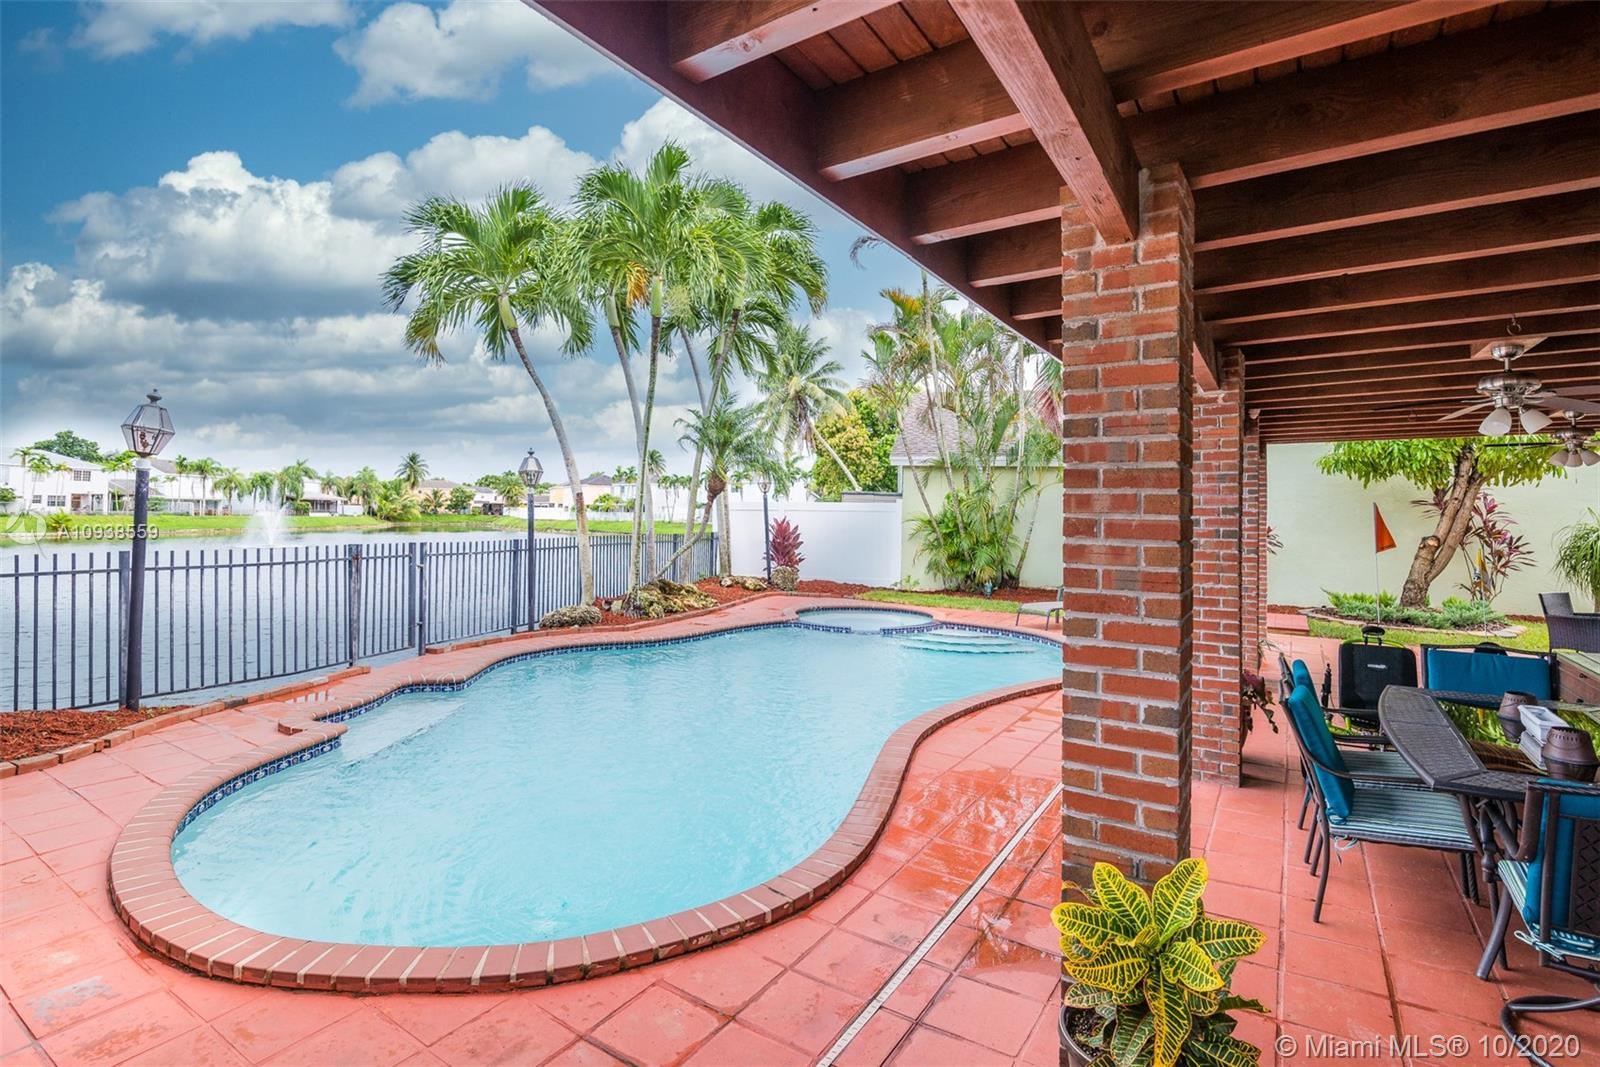 Lakefront & Pool paradise in the highly sought after Panache Community with amazing lake and fountain view! Move right in to this large 4 Bedroom, 3 Full Bath home with 2 car garage and a 4 car driveway in West Kendall. Huge Owner's Suite w/ dressing area & 3 other bedrooms all with water/lake views. First floor features a large living room and formal dining room with vaulted ceilings. Kitchen features an Island, and SS appliances incl 2 refrigerators. Relax in your backyard paradise w/free form pool with whirlpool & a covered patio. Accordion hurricane shutters throughout. Located in the desirable community of Panache, with amenities such as club house, pool, tennis courts and super low HOA fees, close to great schools, hospitals, public transportation, highways, supermarkets, and more.